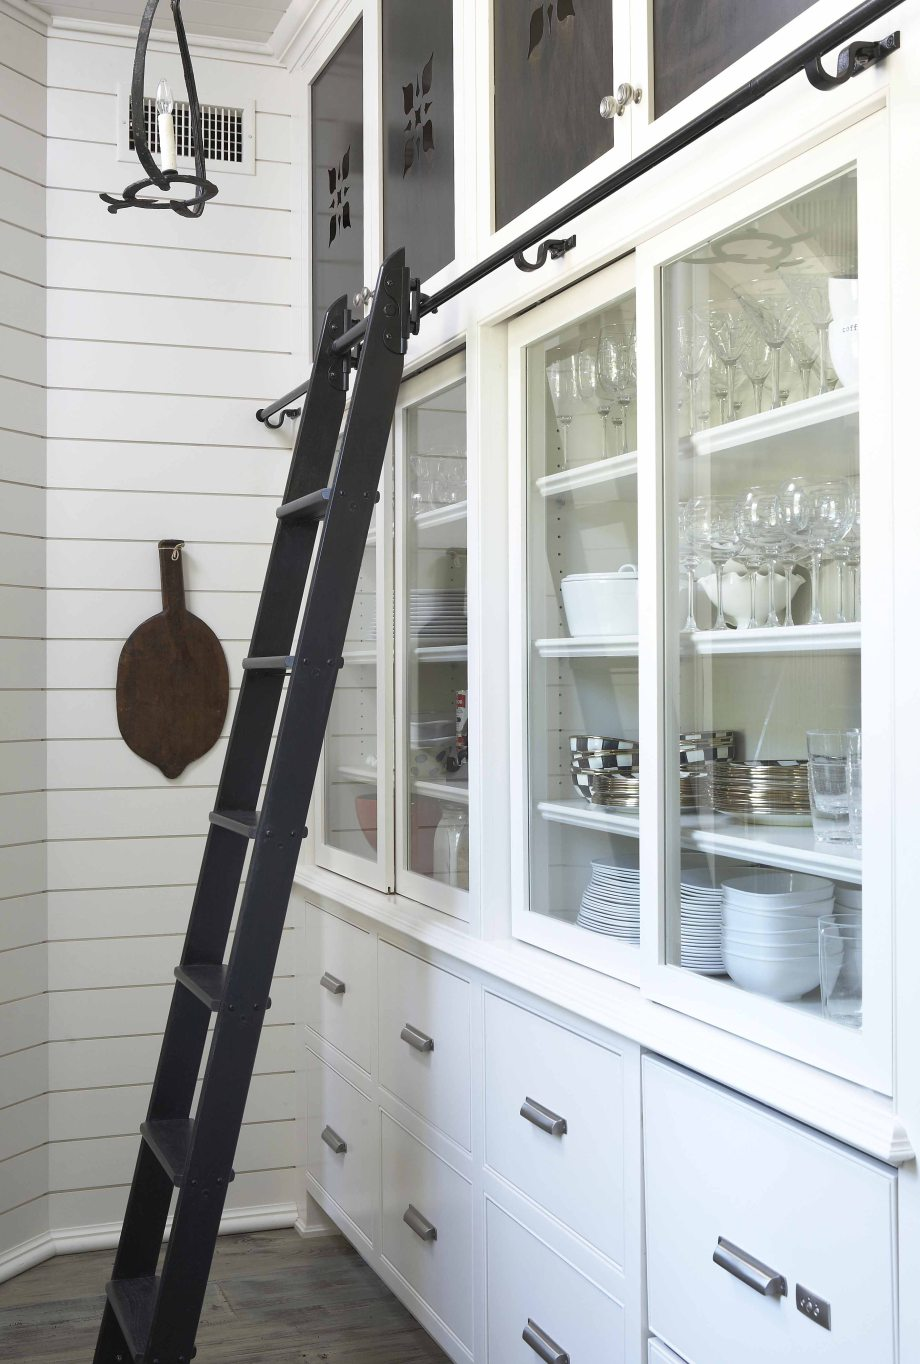 white shiplap kitchen - dish storage hutch with sliding library latter and pierced panel soffit cabinets - Tracery Interiors via Atticmag